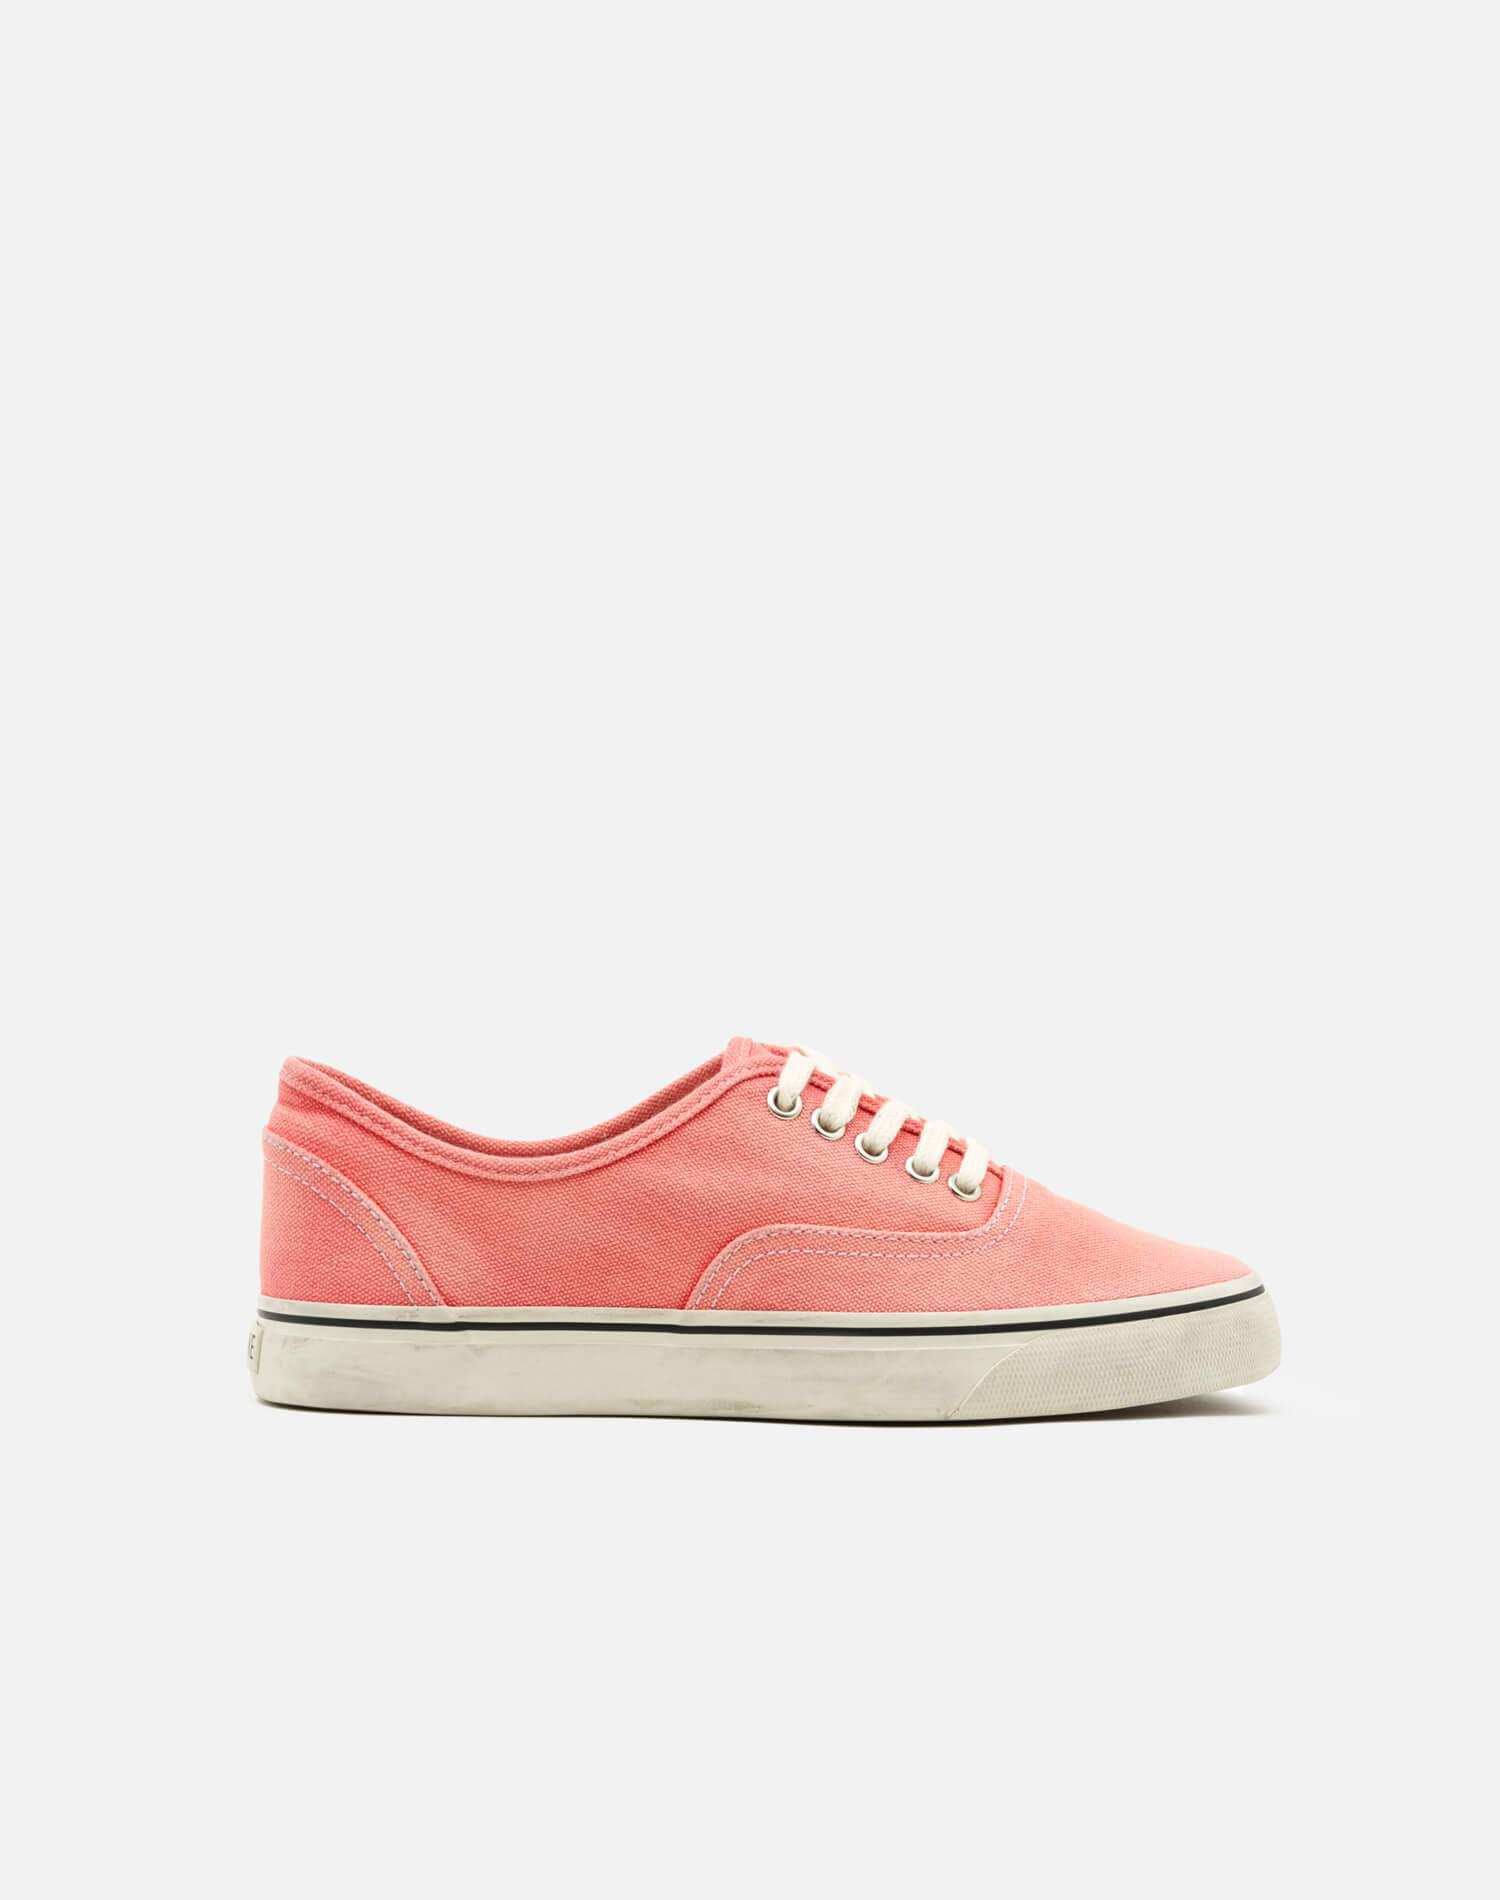 70s Low Top Skate - Faded Coral